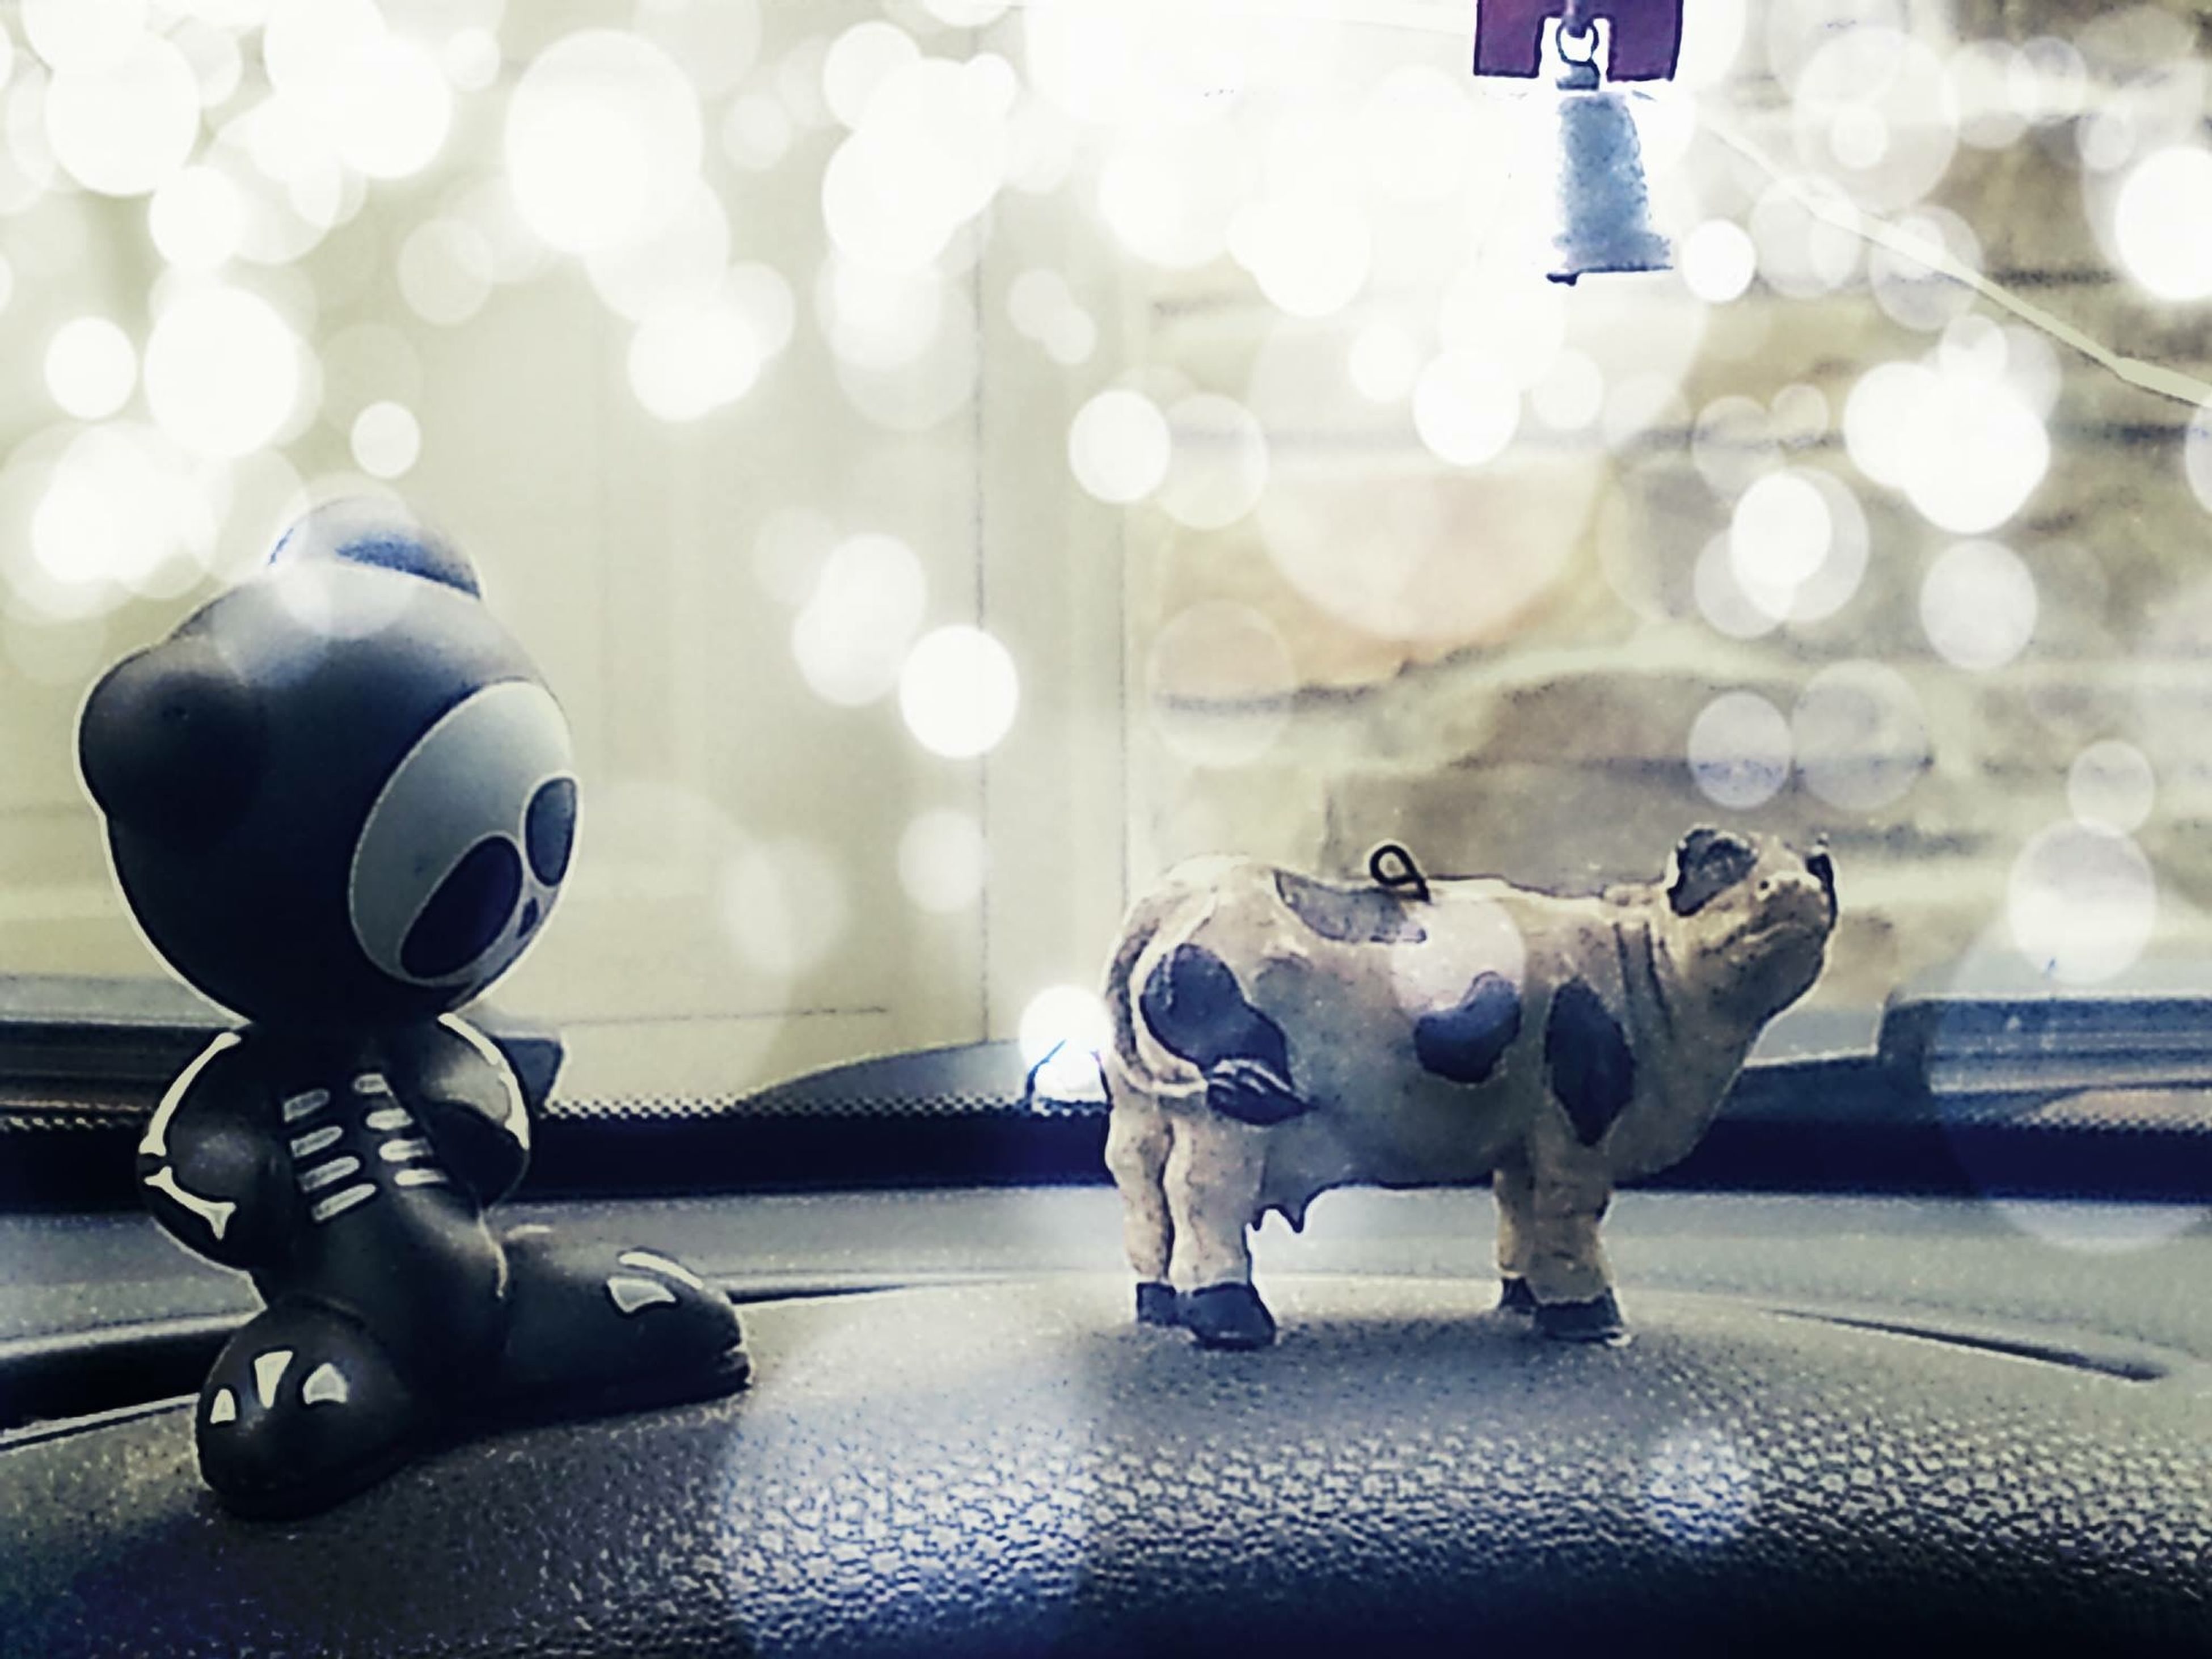 indoors, transportation, toy, close-up, street, focus on foreground, no people, mode of transport, day, sport, one animal, full length, flooring, technology, land vehicle, selective focus, reflection, animal themes, sunlight